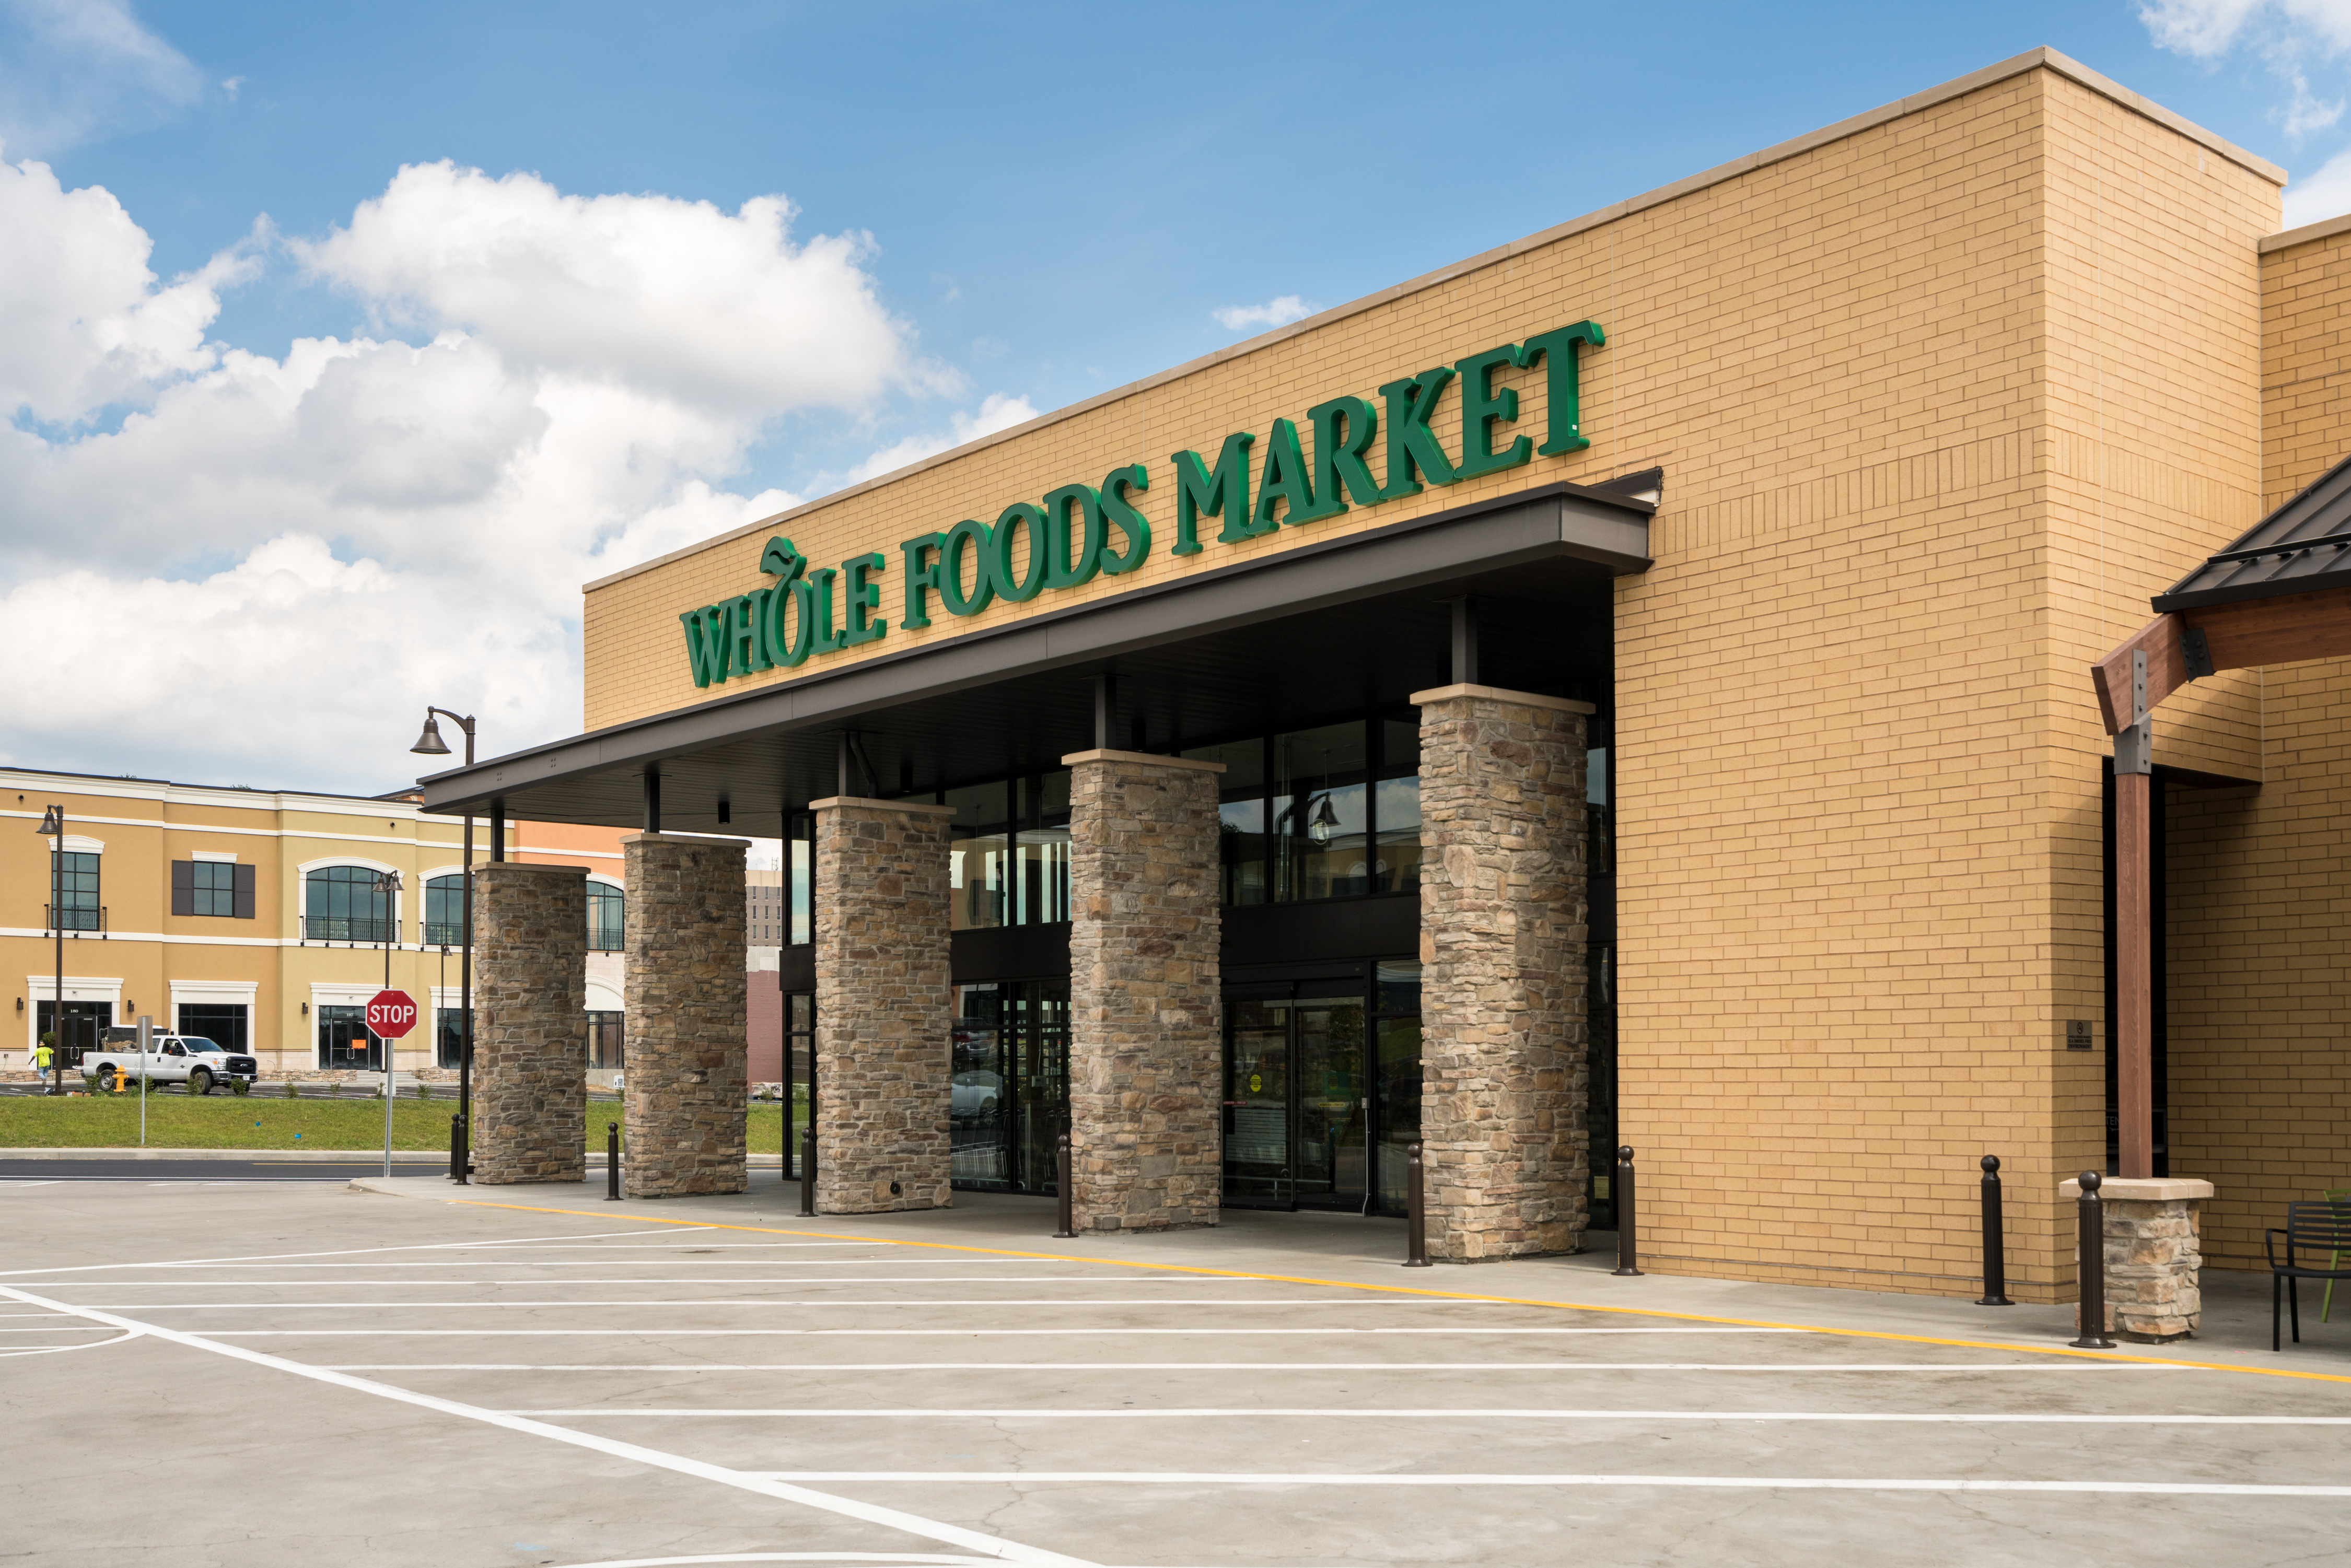 Whole Foods Market store in Pittsburgh PA